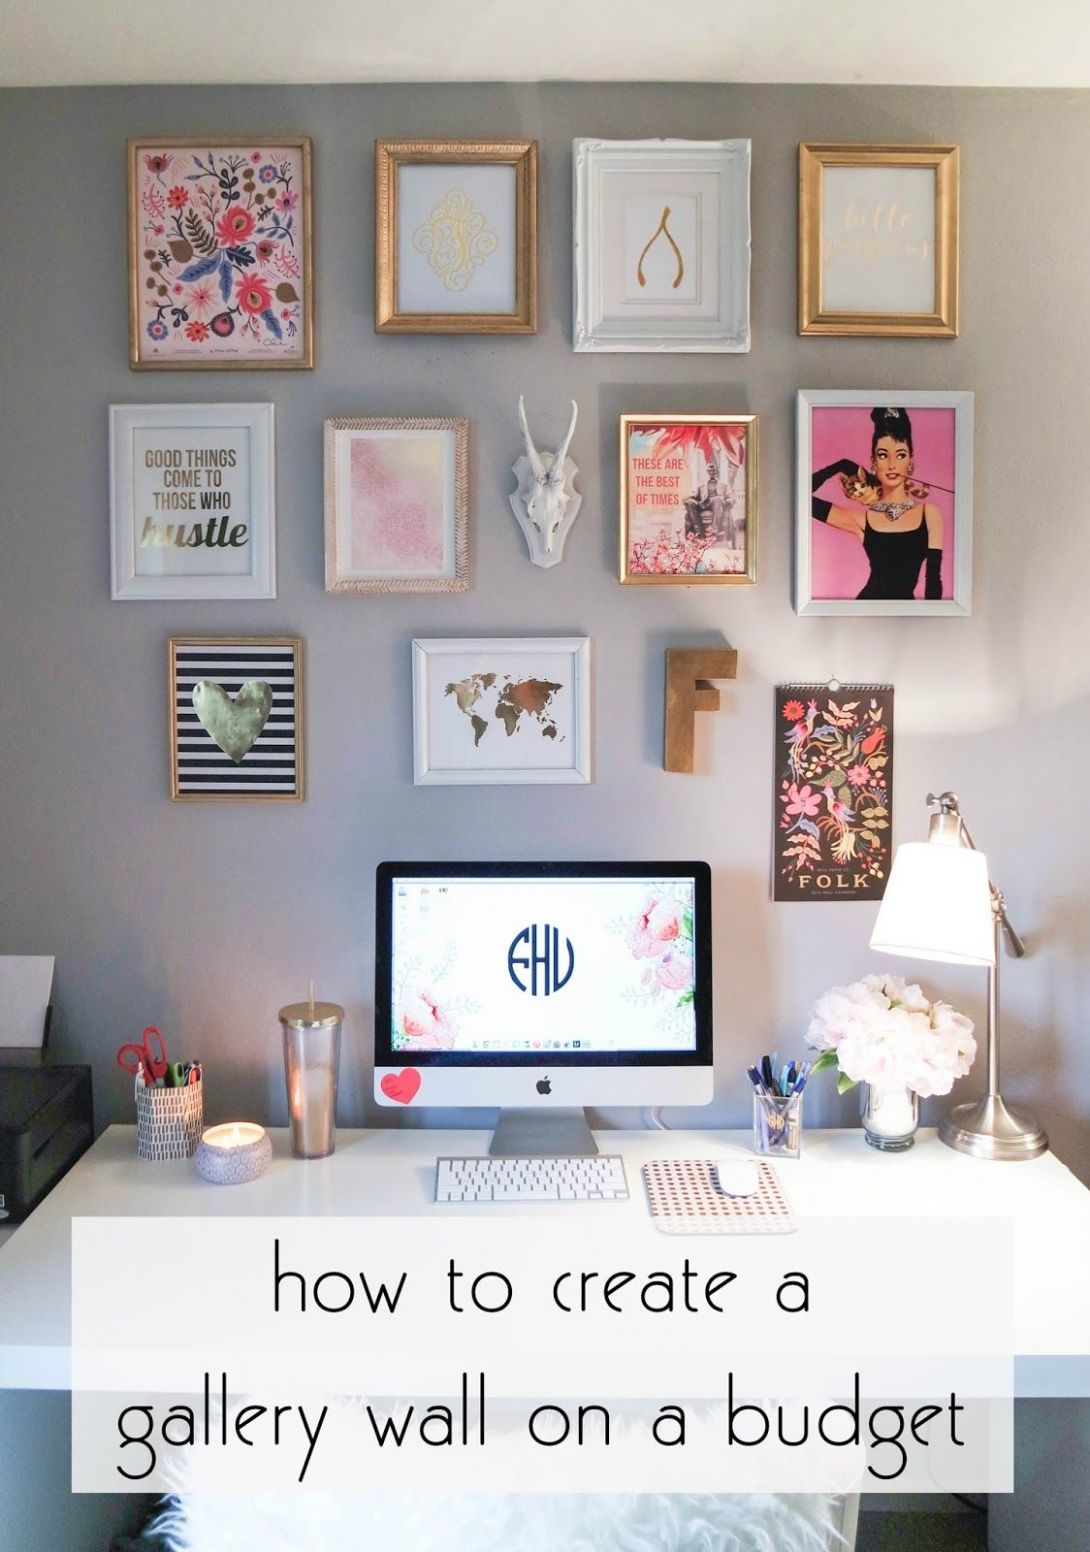 creating a gallery wall on a budget | Dorm room diy, Apartment ..